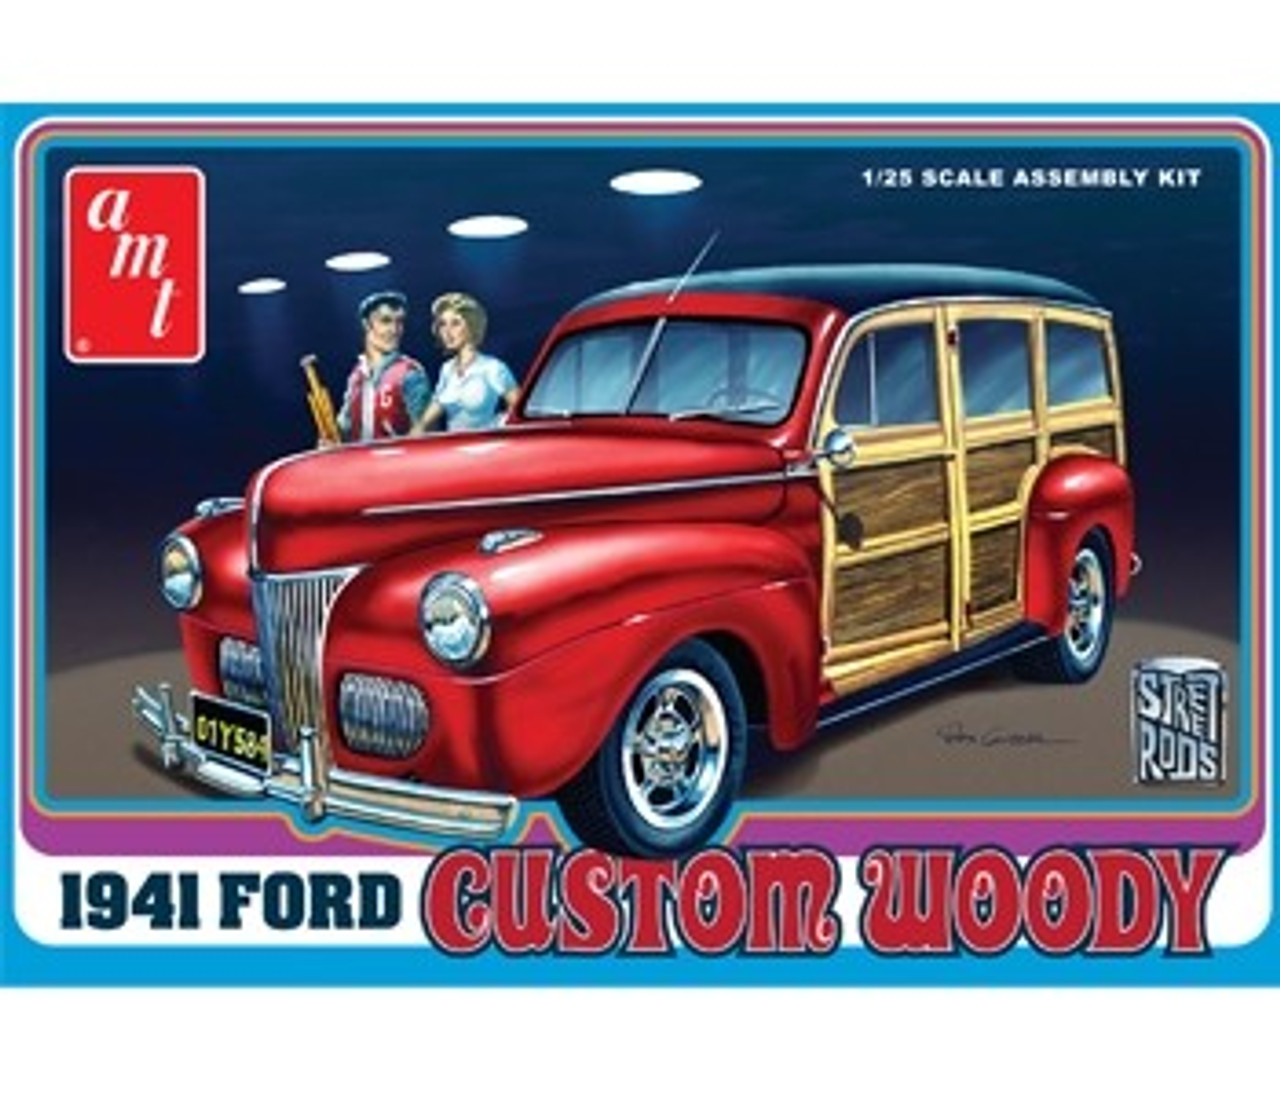 AMT-906  1/25 1941 Ford Custom Woody Car